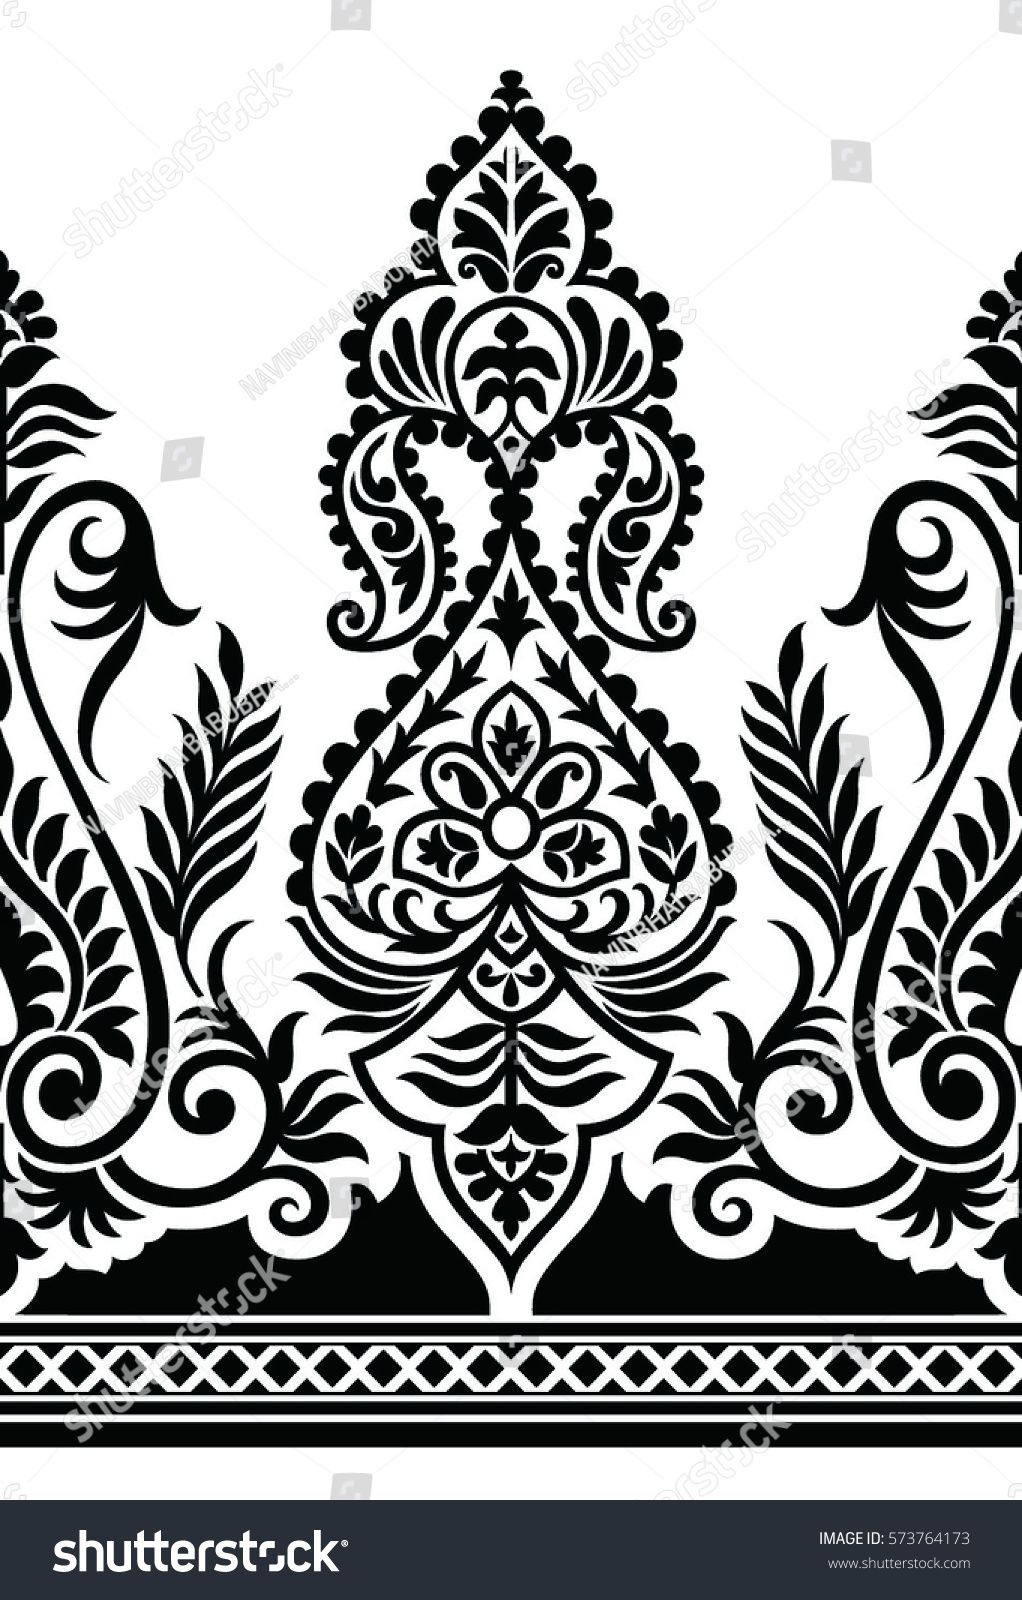 Traditional Black And White Indian Motif Saree Painting Designs